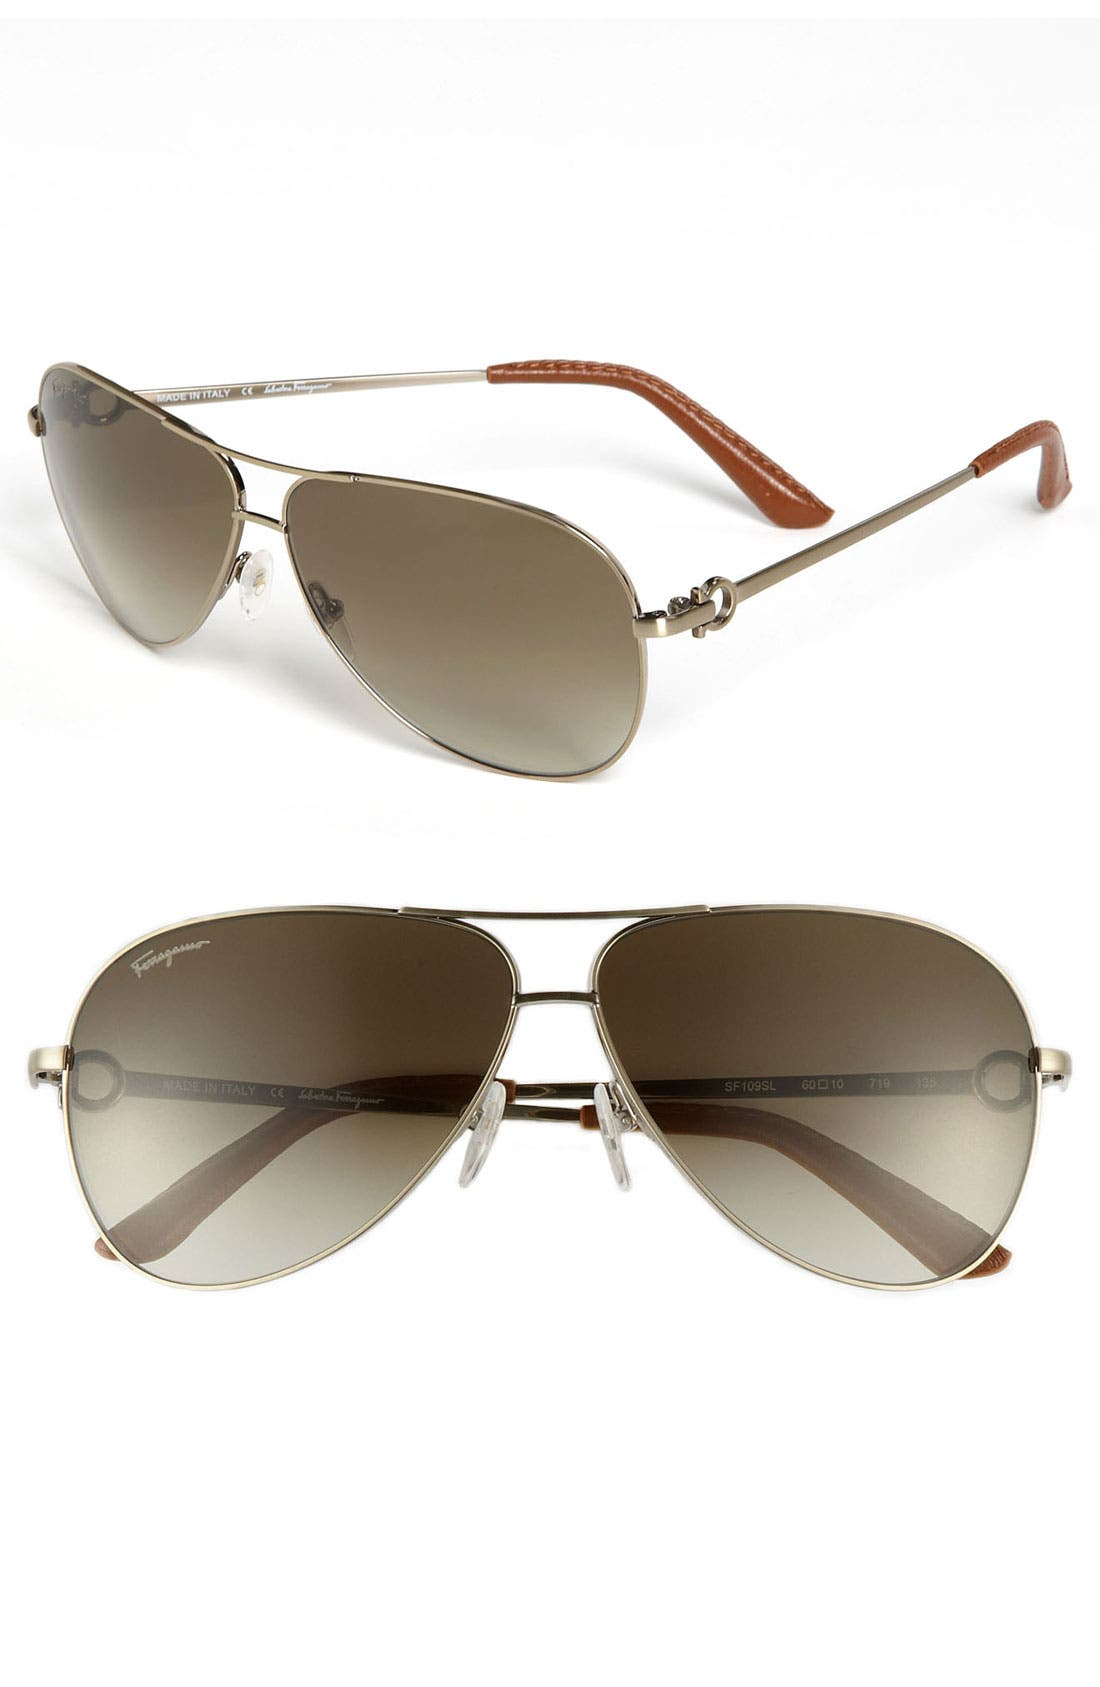 Alternate Image 1 Selected - Salvatore Ferragamo 60mm Metal Aviator Sunglasses